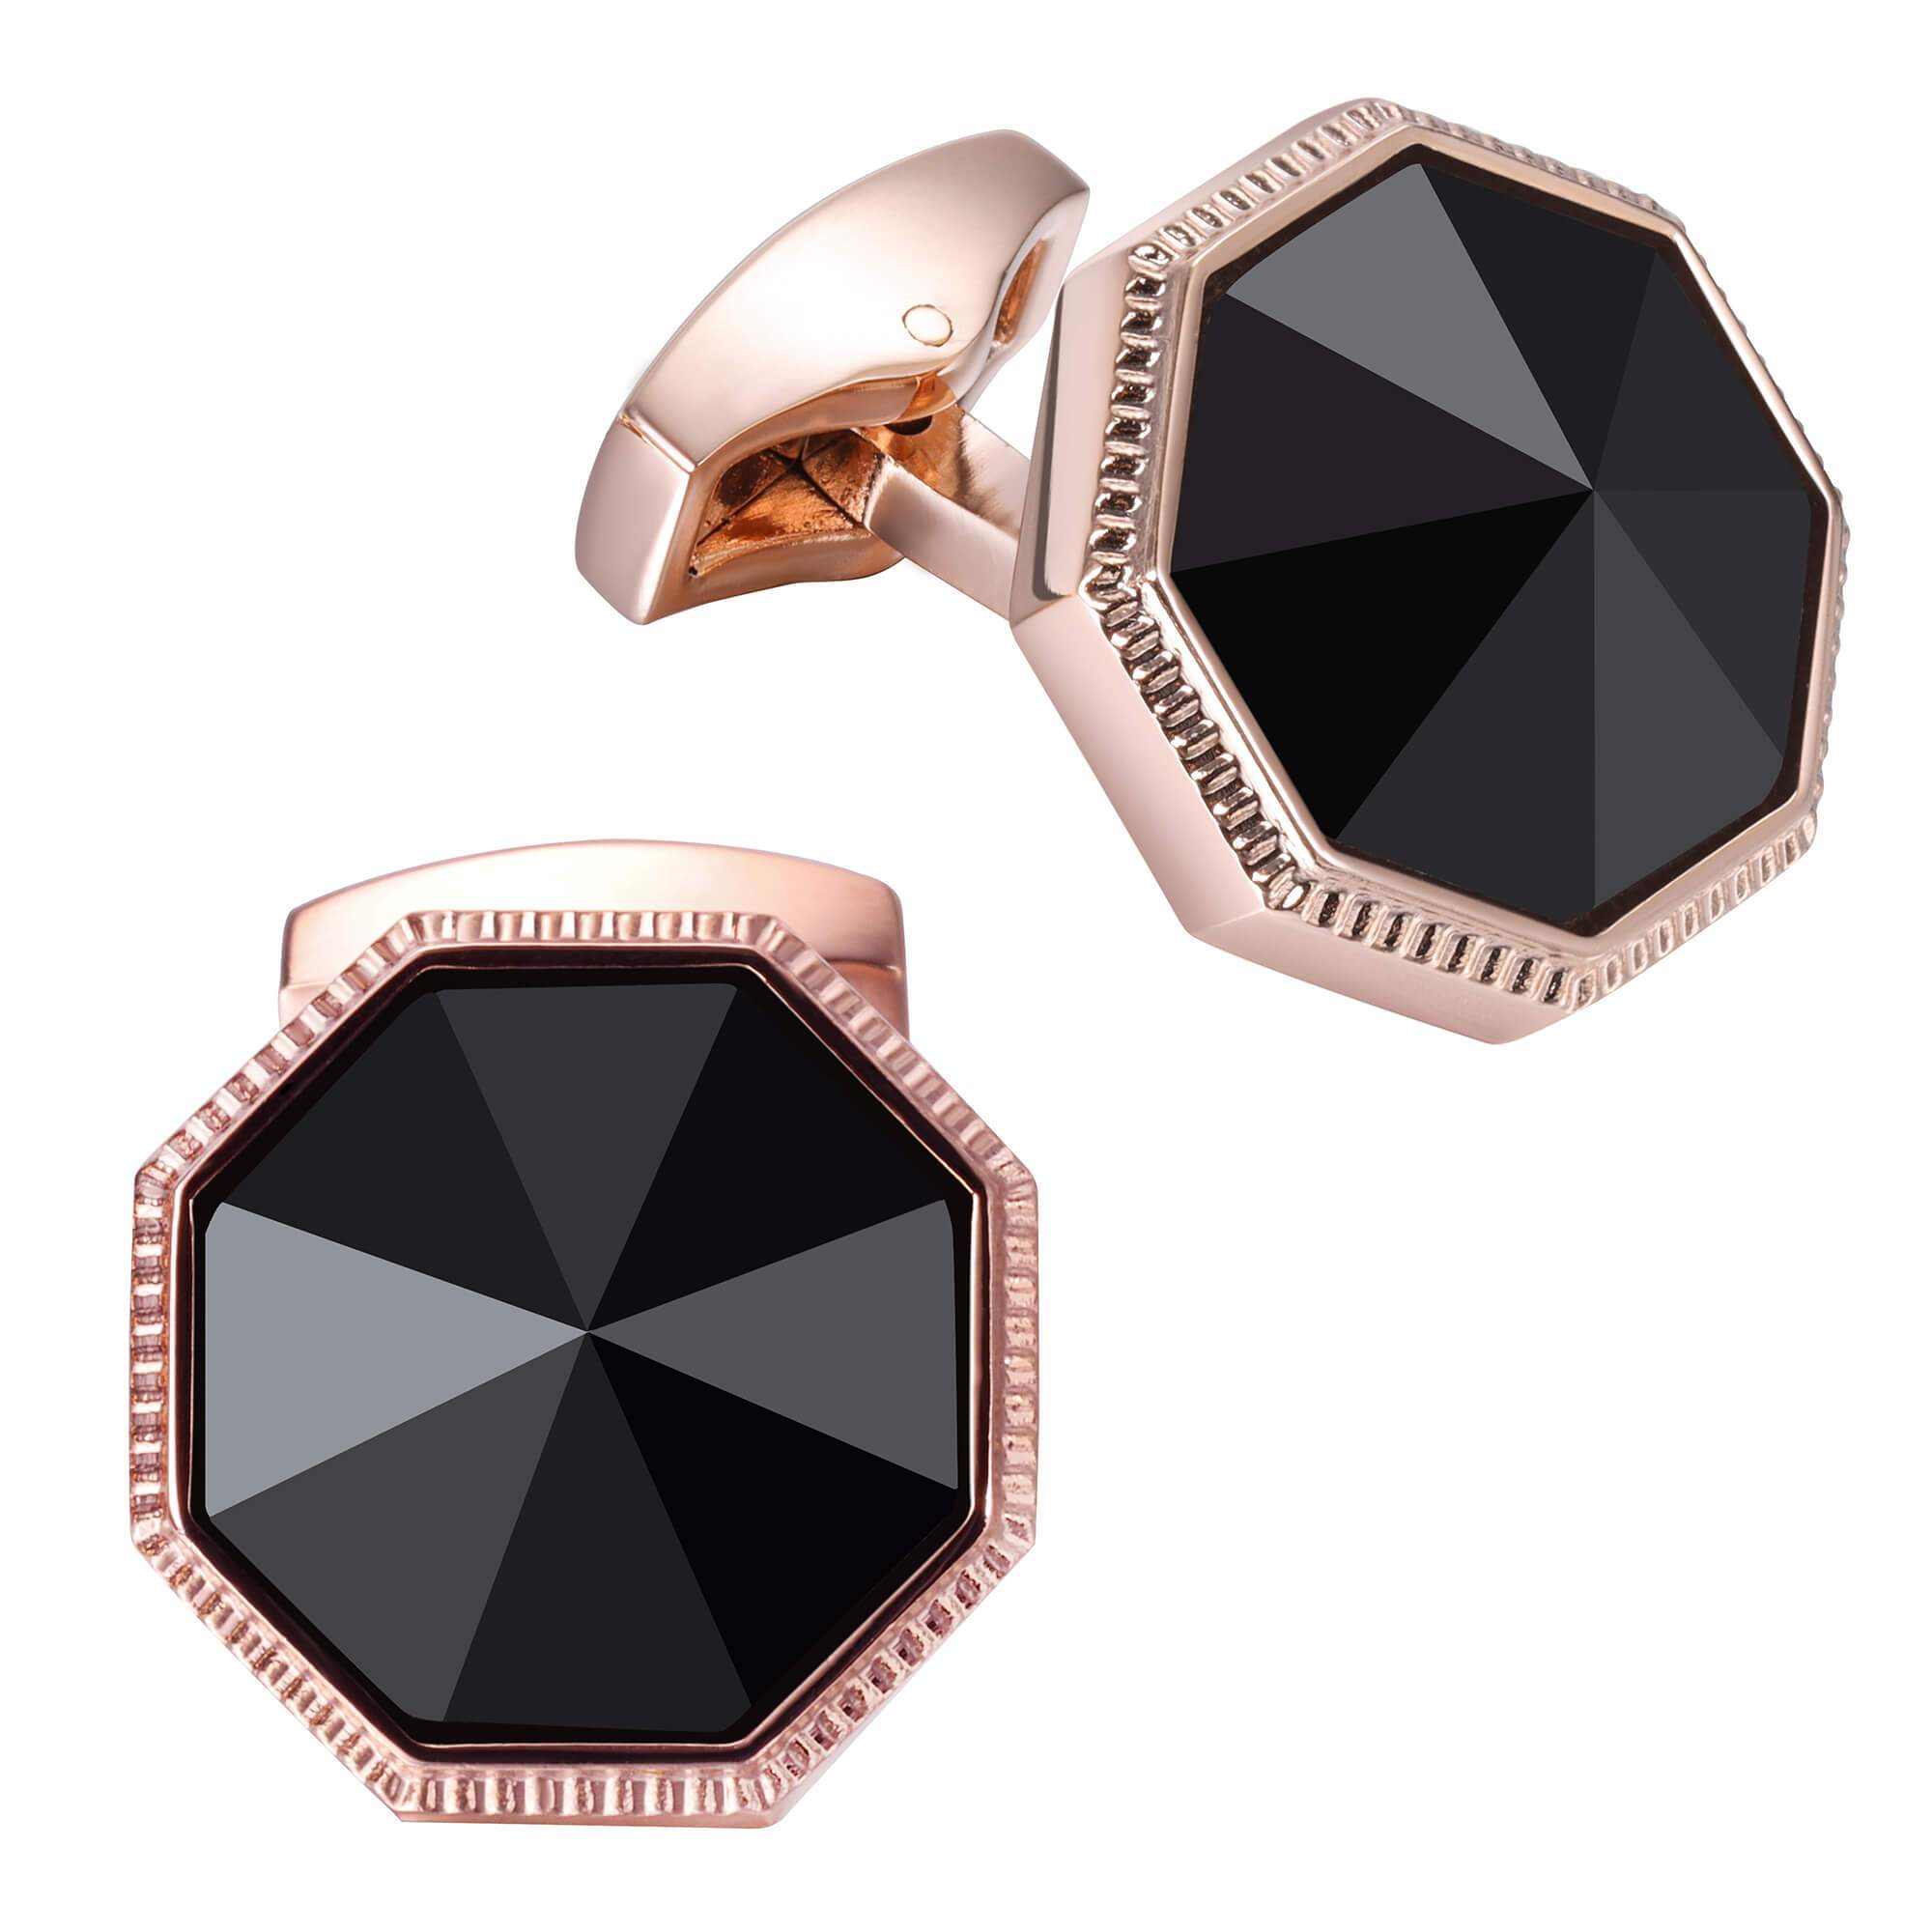 Faceted Black Onyx in Rose Gold Cufflinks Classic & Modern Cufflinks Clinks Australia Default